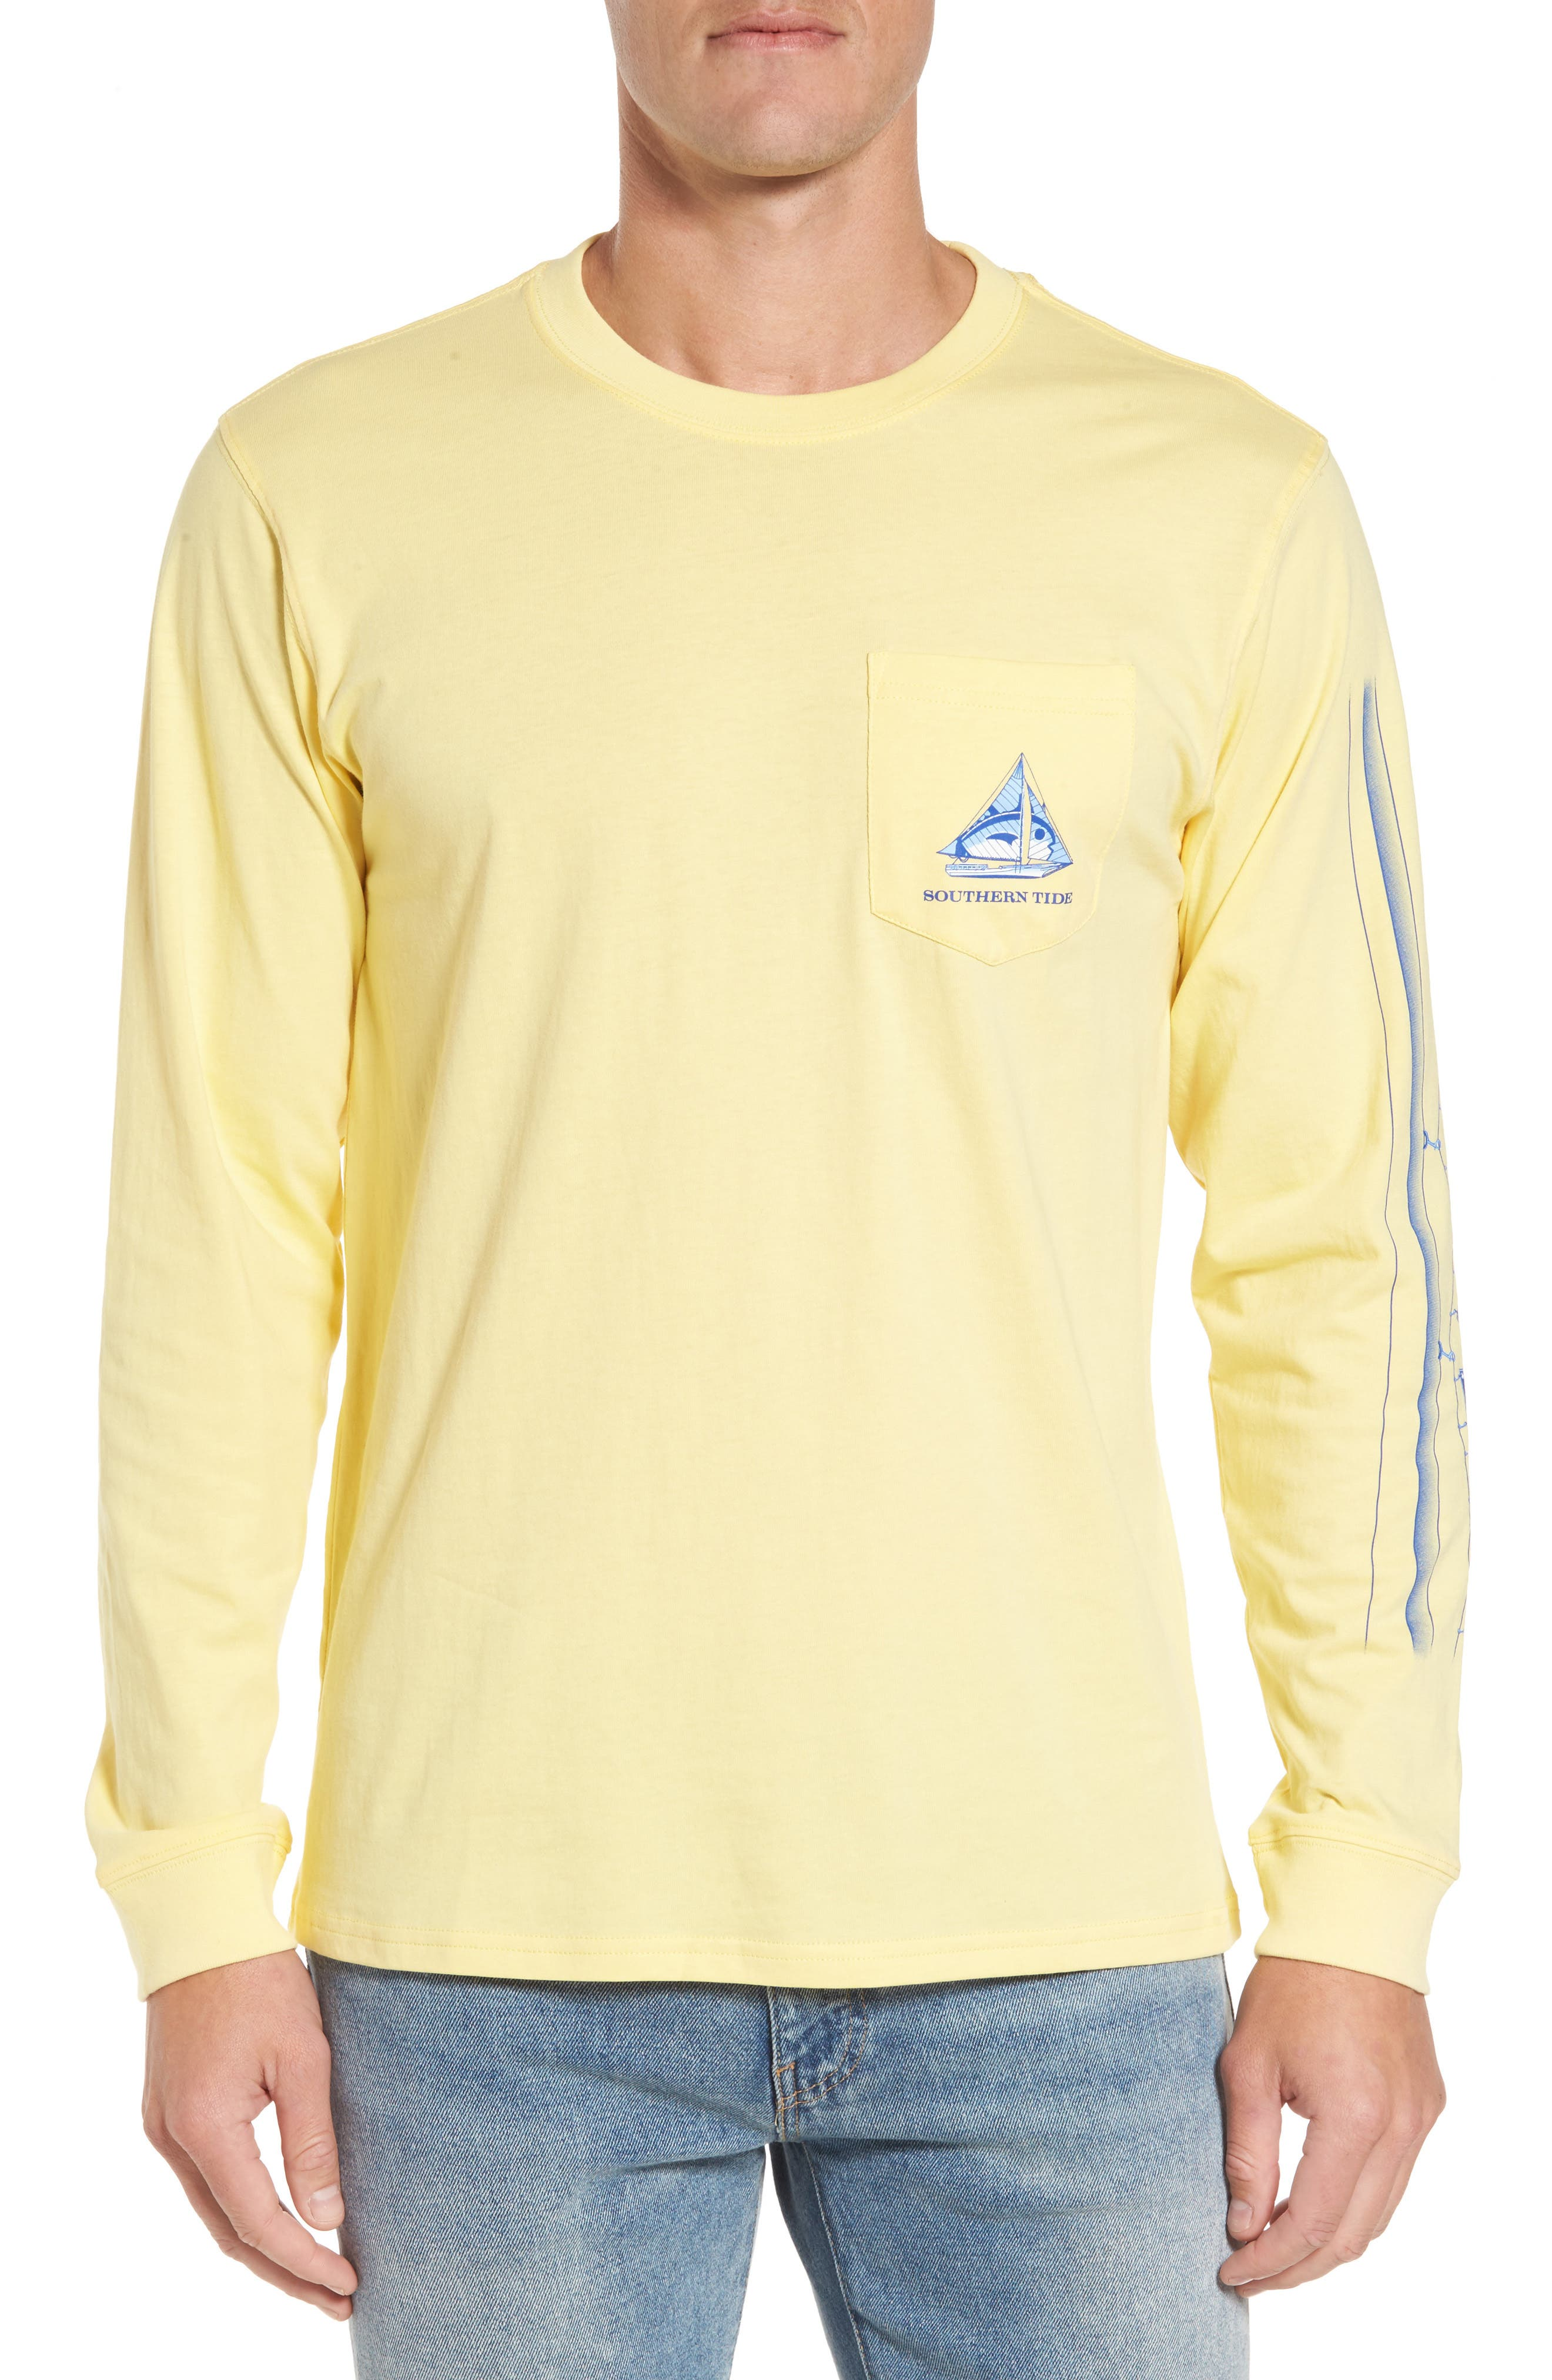 Southern Tide Sailboat Classic T-Shirt